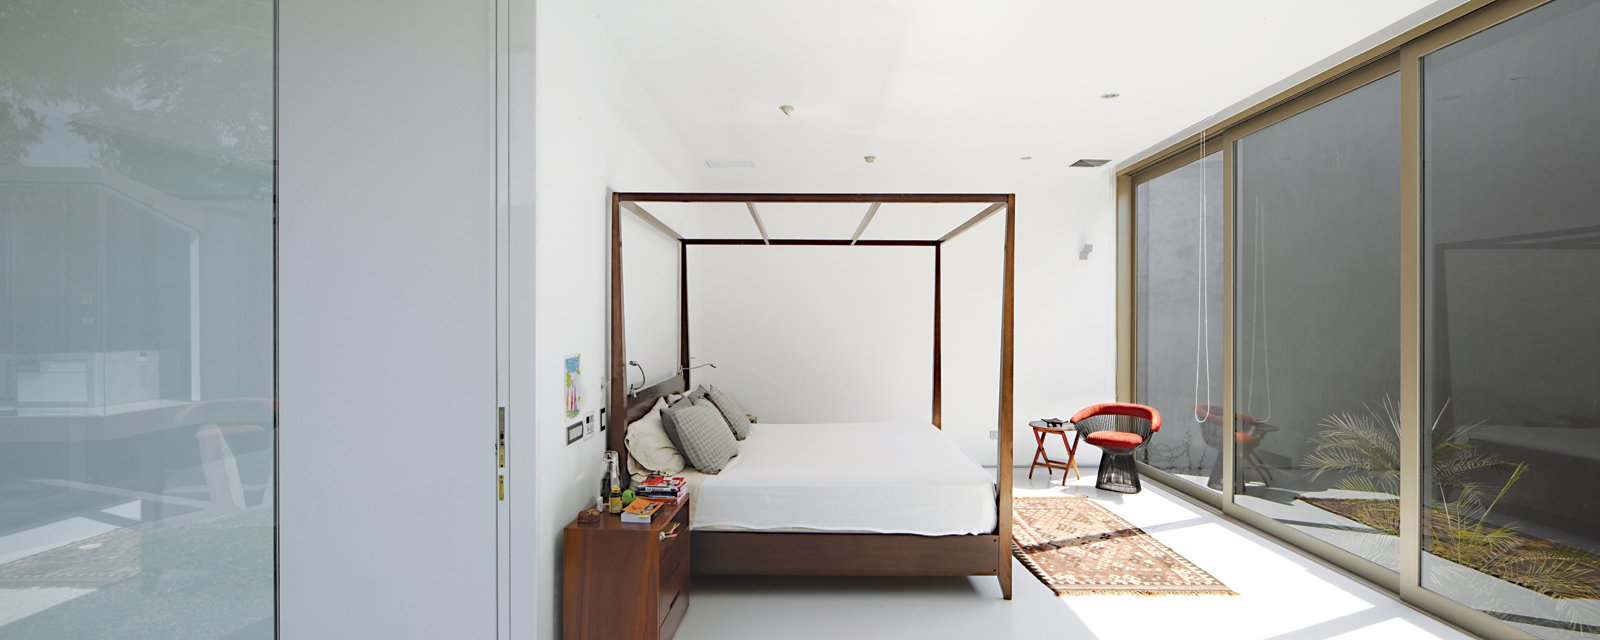 Bedroom, Bed, Dresser, and Chair In the master bedroom is a four-poster bed by Javier Rubio and a vintage Warren Platner chair.  Photos from A Modern Concrete Home in Peru